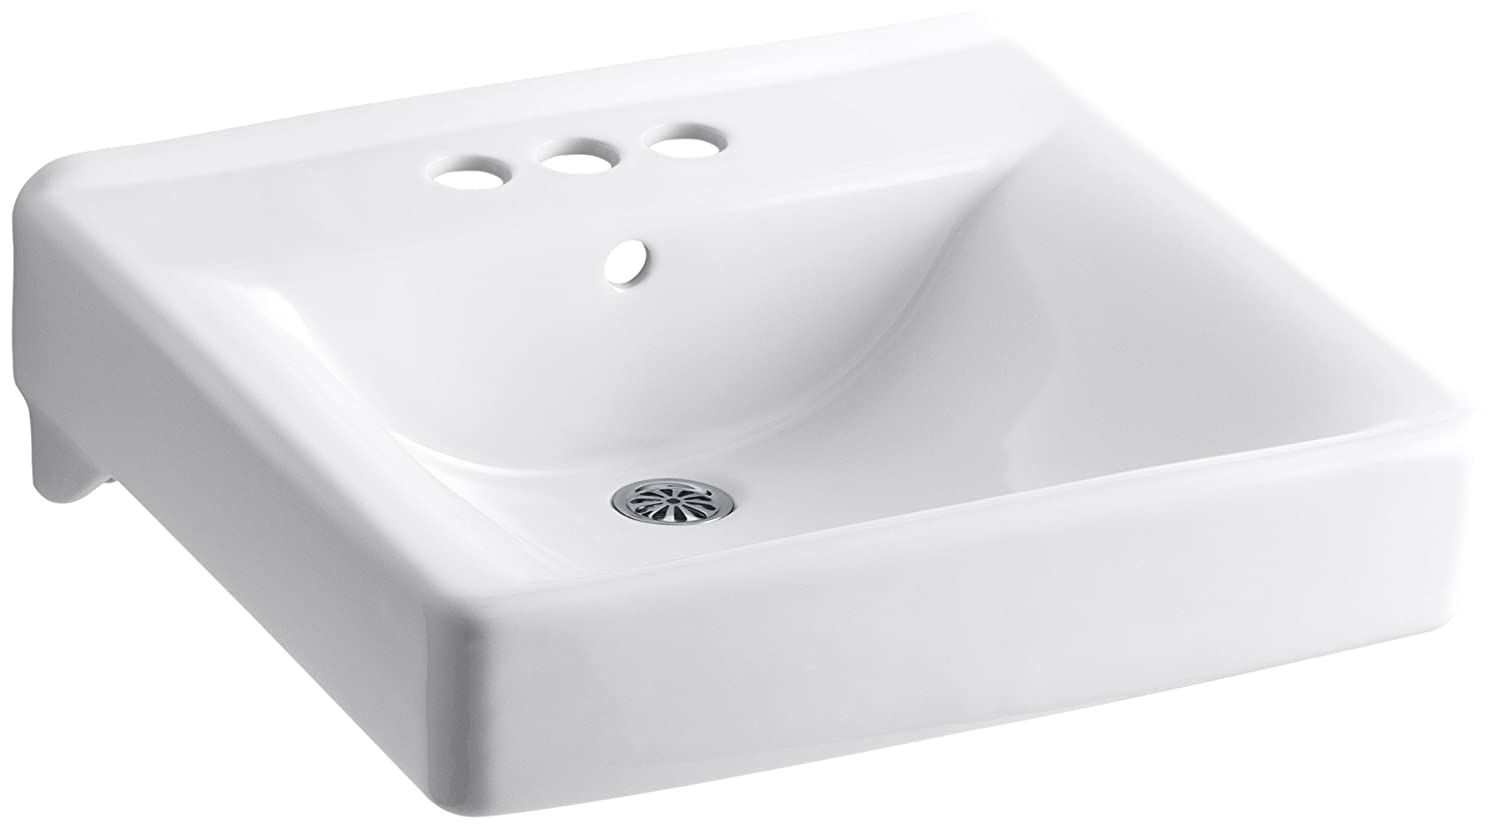 kohler k20540 soho wallmount bathroom sink white wall mounted sinks amazoncom